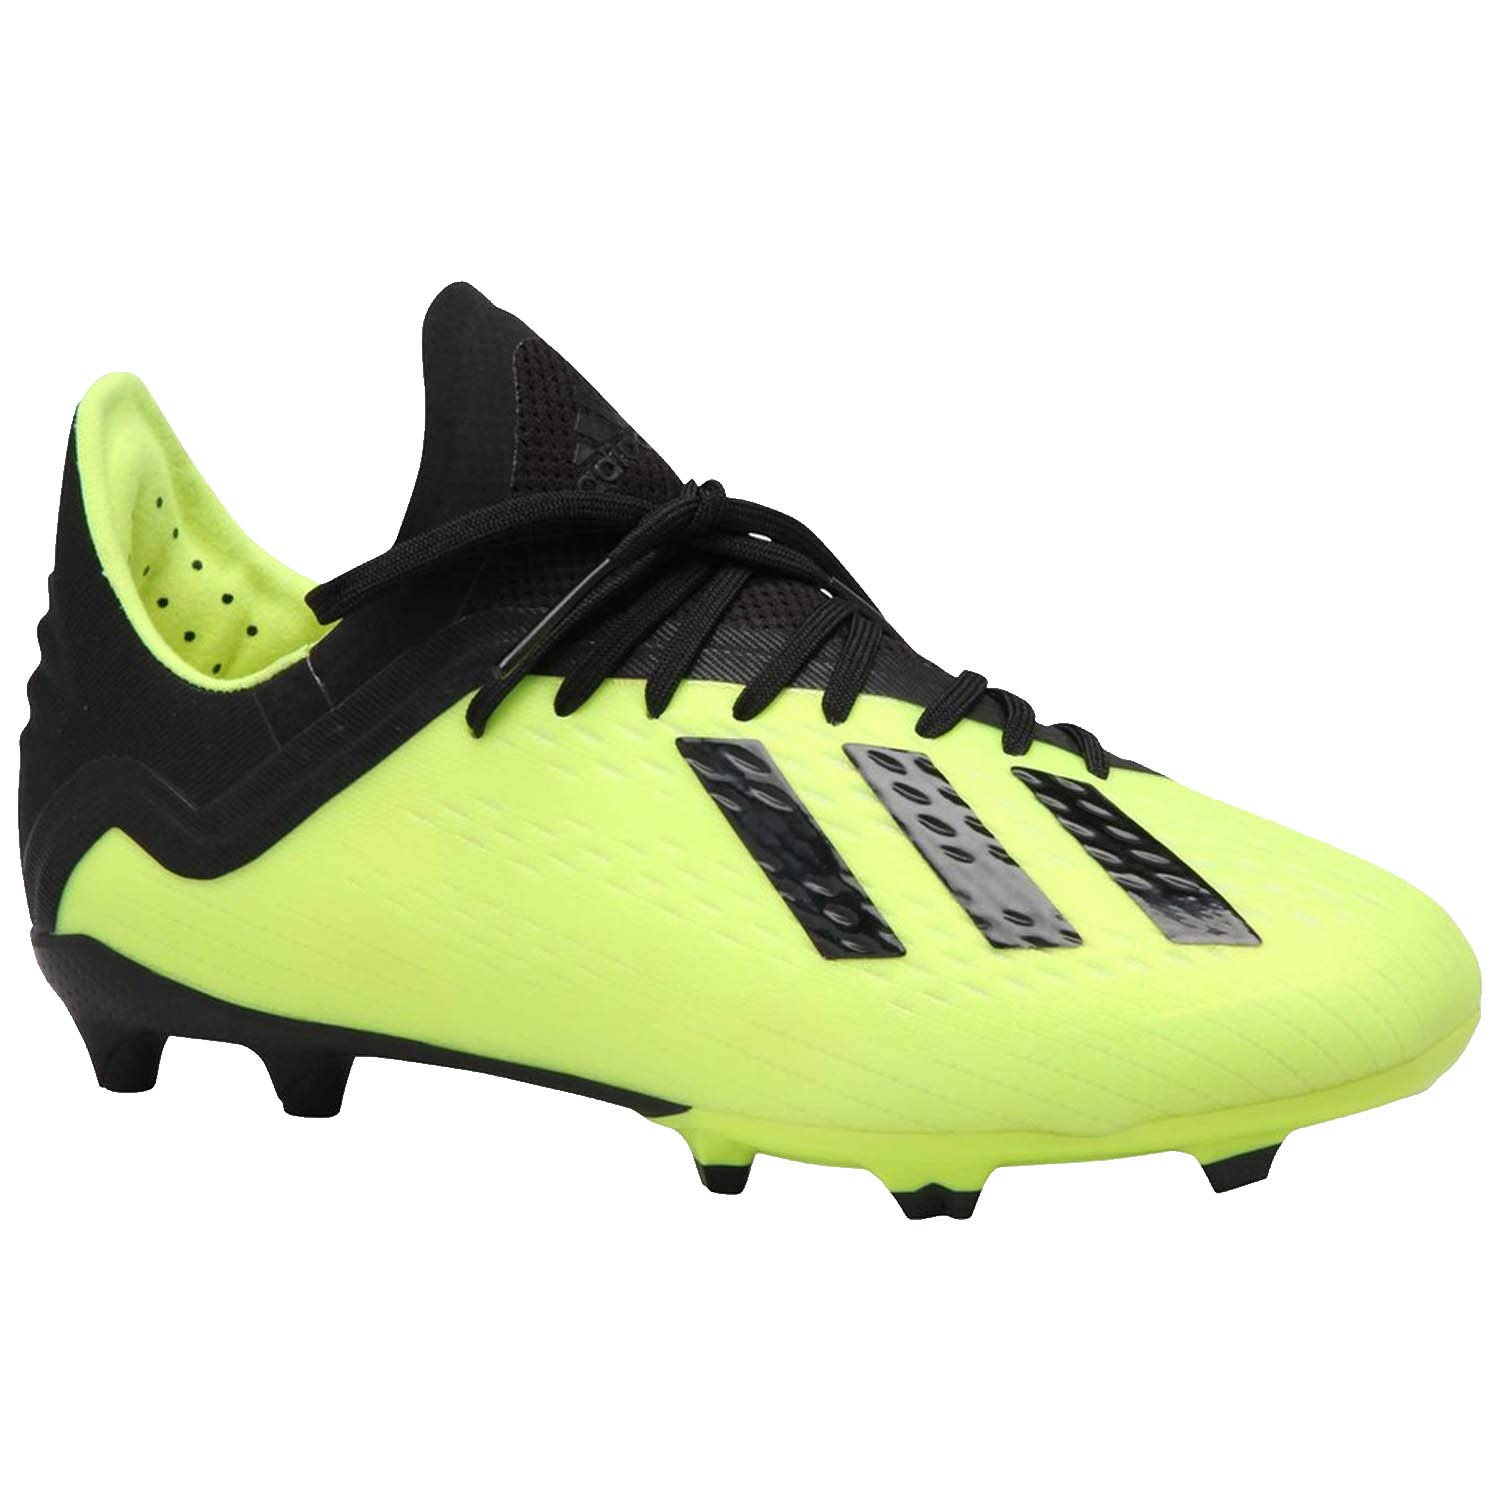 reputable site 0b8e4 35caf Amazon.com | adidas Kid's X 18.1 FG Soccer Cleat | Soccer